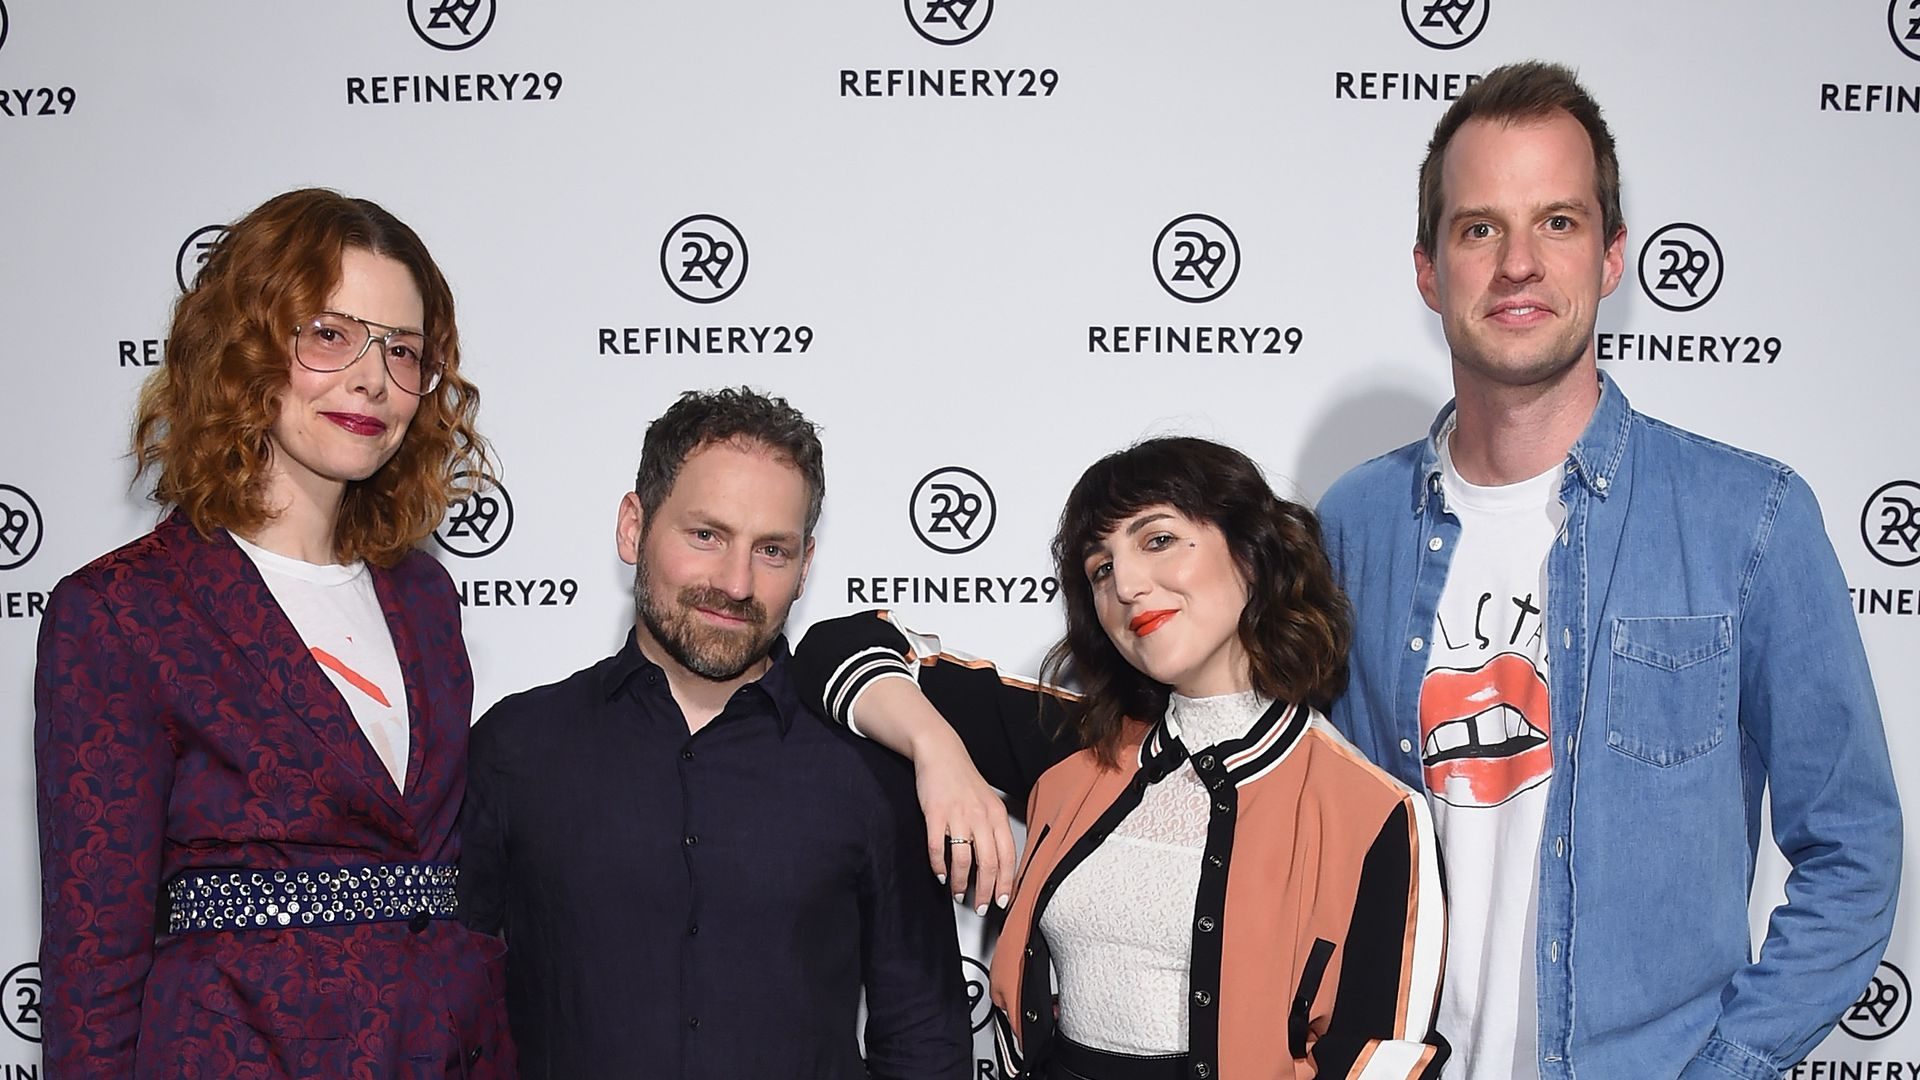 The founders of Refinery29